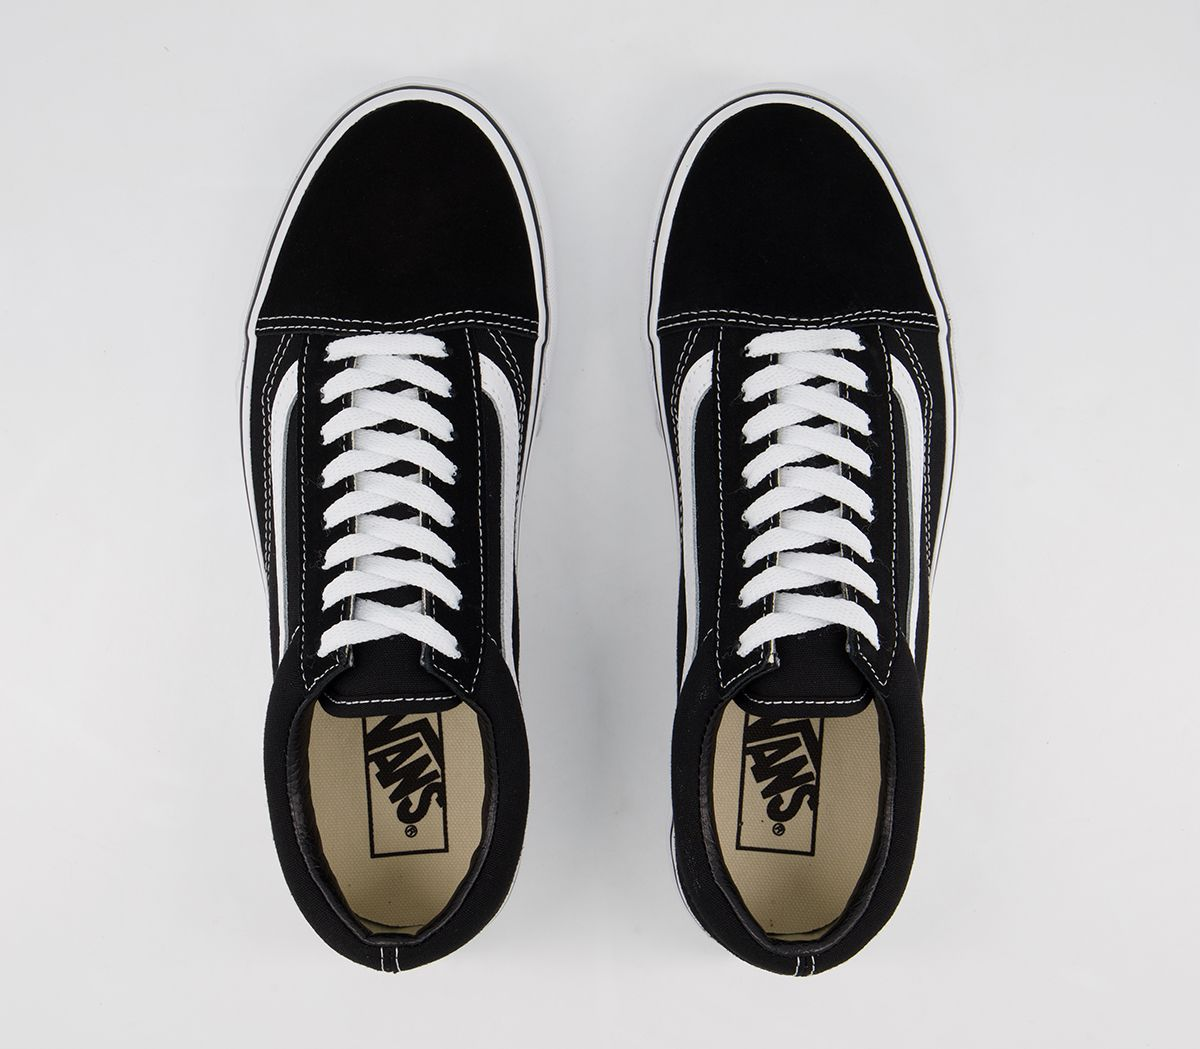 a646617779d Vans Old Skool Platform Black White - Hers trainers